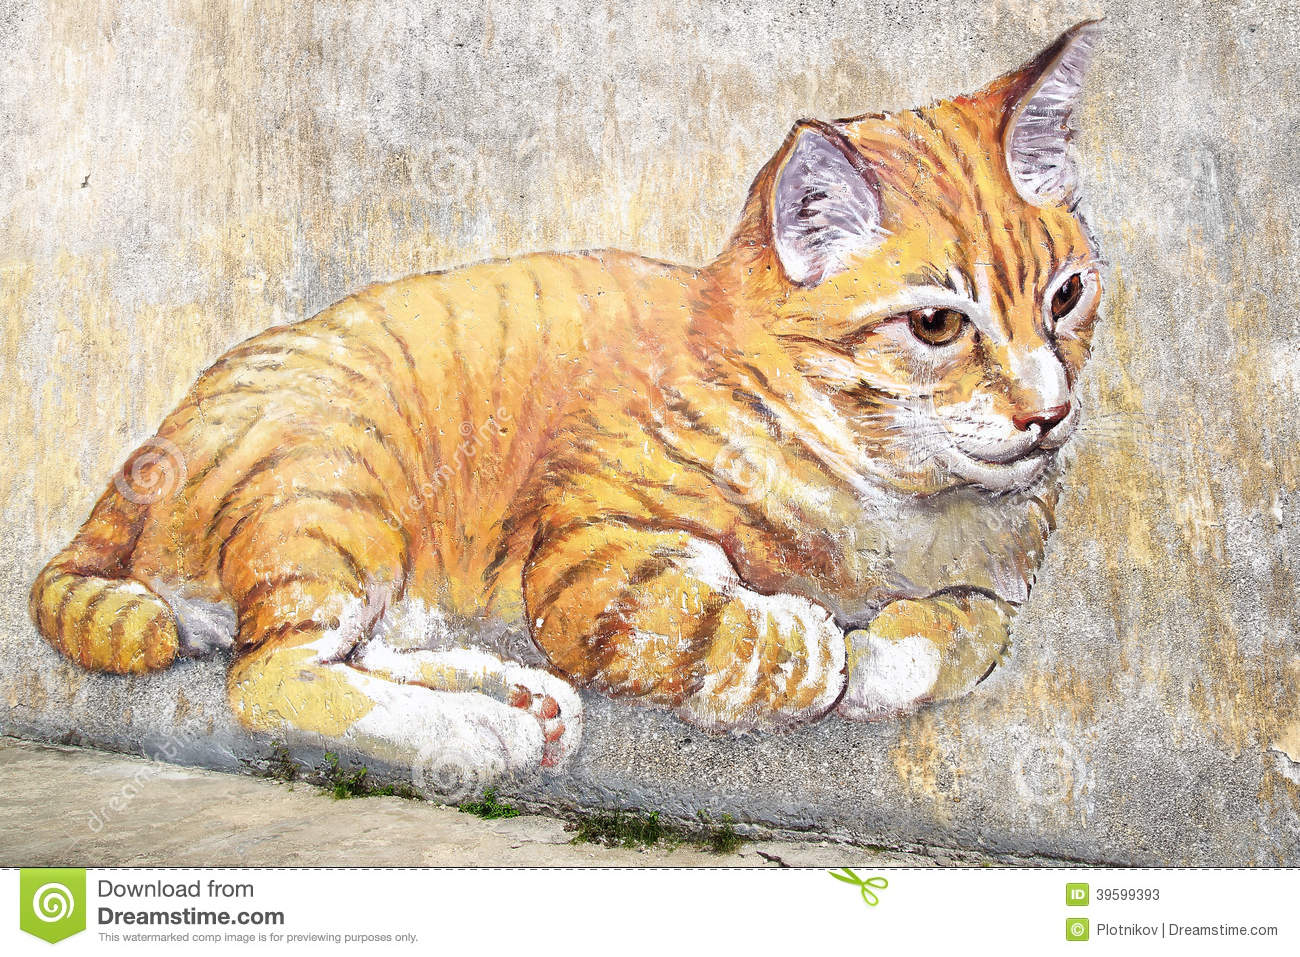 D Exhibition Penang : Giant cat mural. george town penang editorial stock photo image